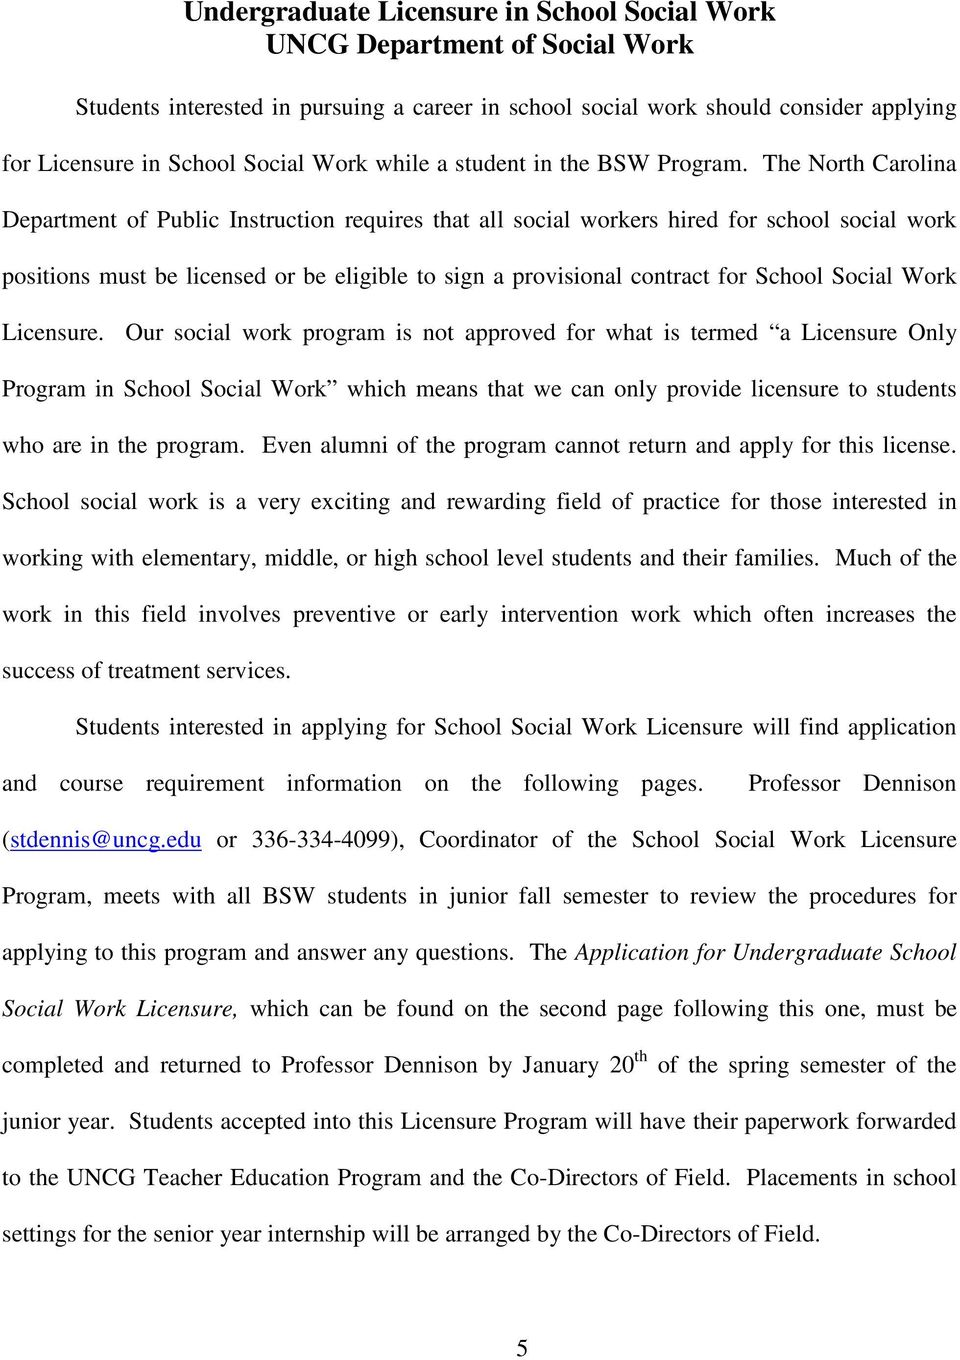 The North Carolina Department of Public Instruction requires that all social workers hired for school social work positions must be licensed or be eligible to sign a provisional contract for School